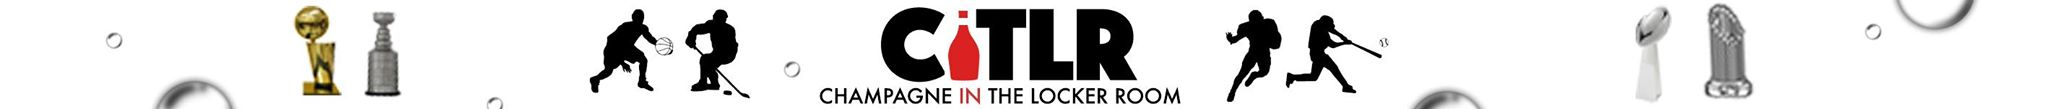 Champagne In The Locker Room